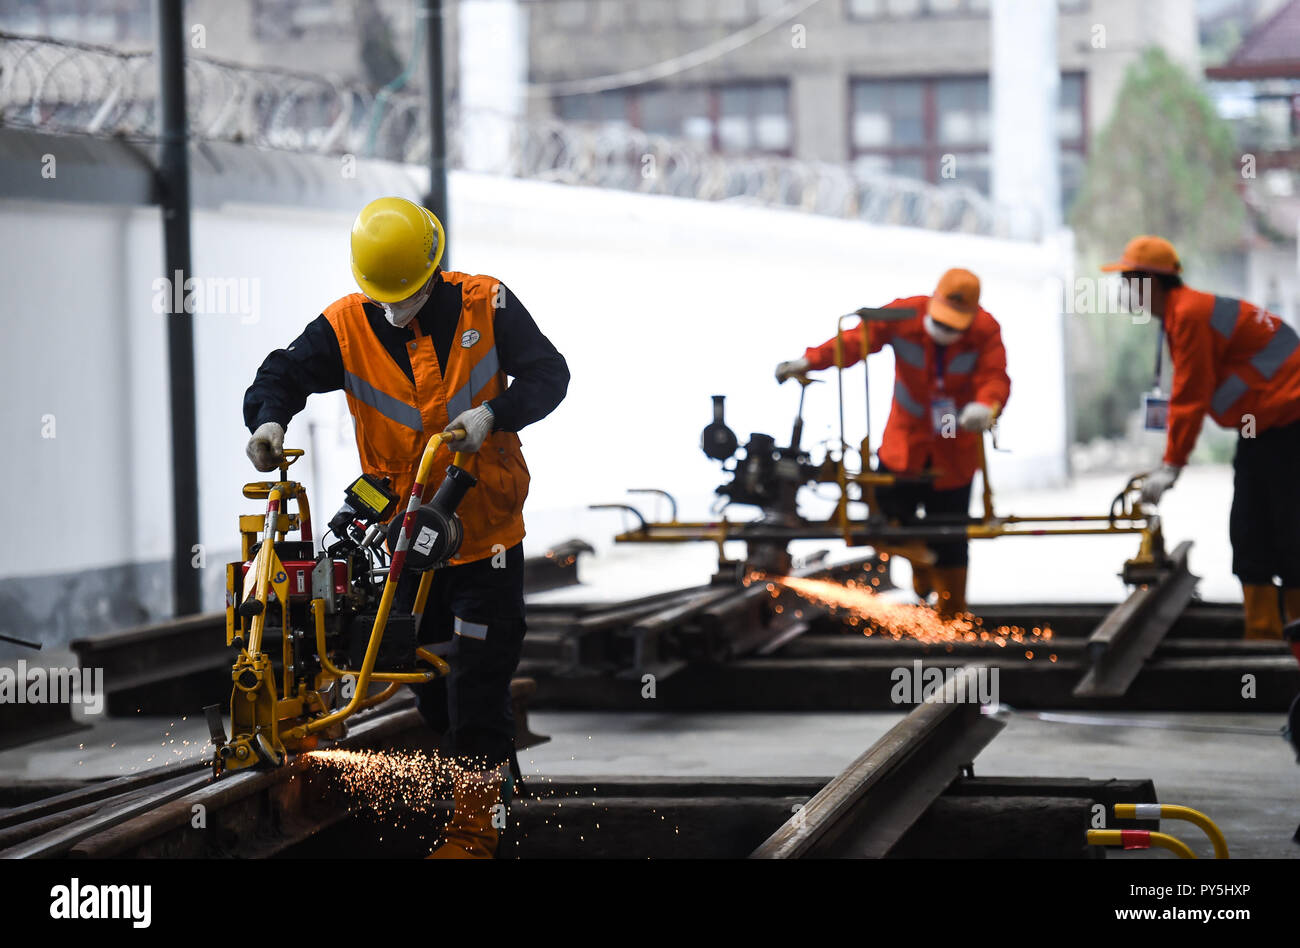 Liupanshui, China's Guizhou Province. 25th Oct, 2018. Contestants burnish rail during a skill competition in Liupanshui, southwest China's Guizhou Province, Oct. 25, 2018. A total of 30 railway workers participated in the competition. Credit: Tao Liang/Xinhua/Alamy Live News - Stock Image